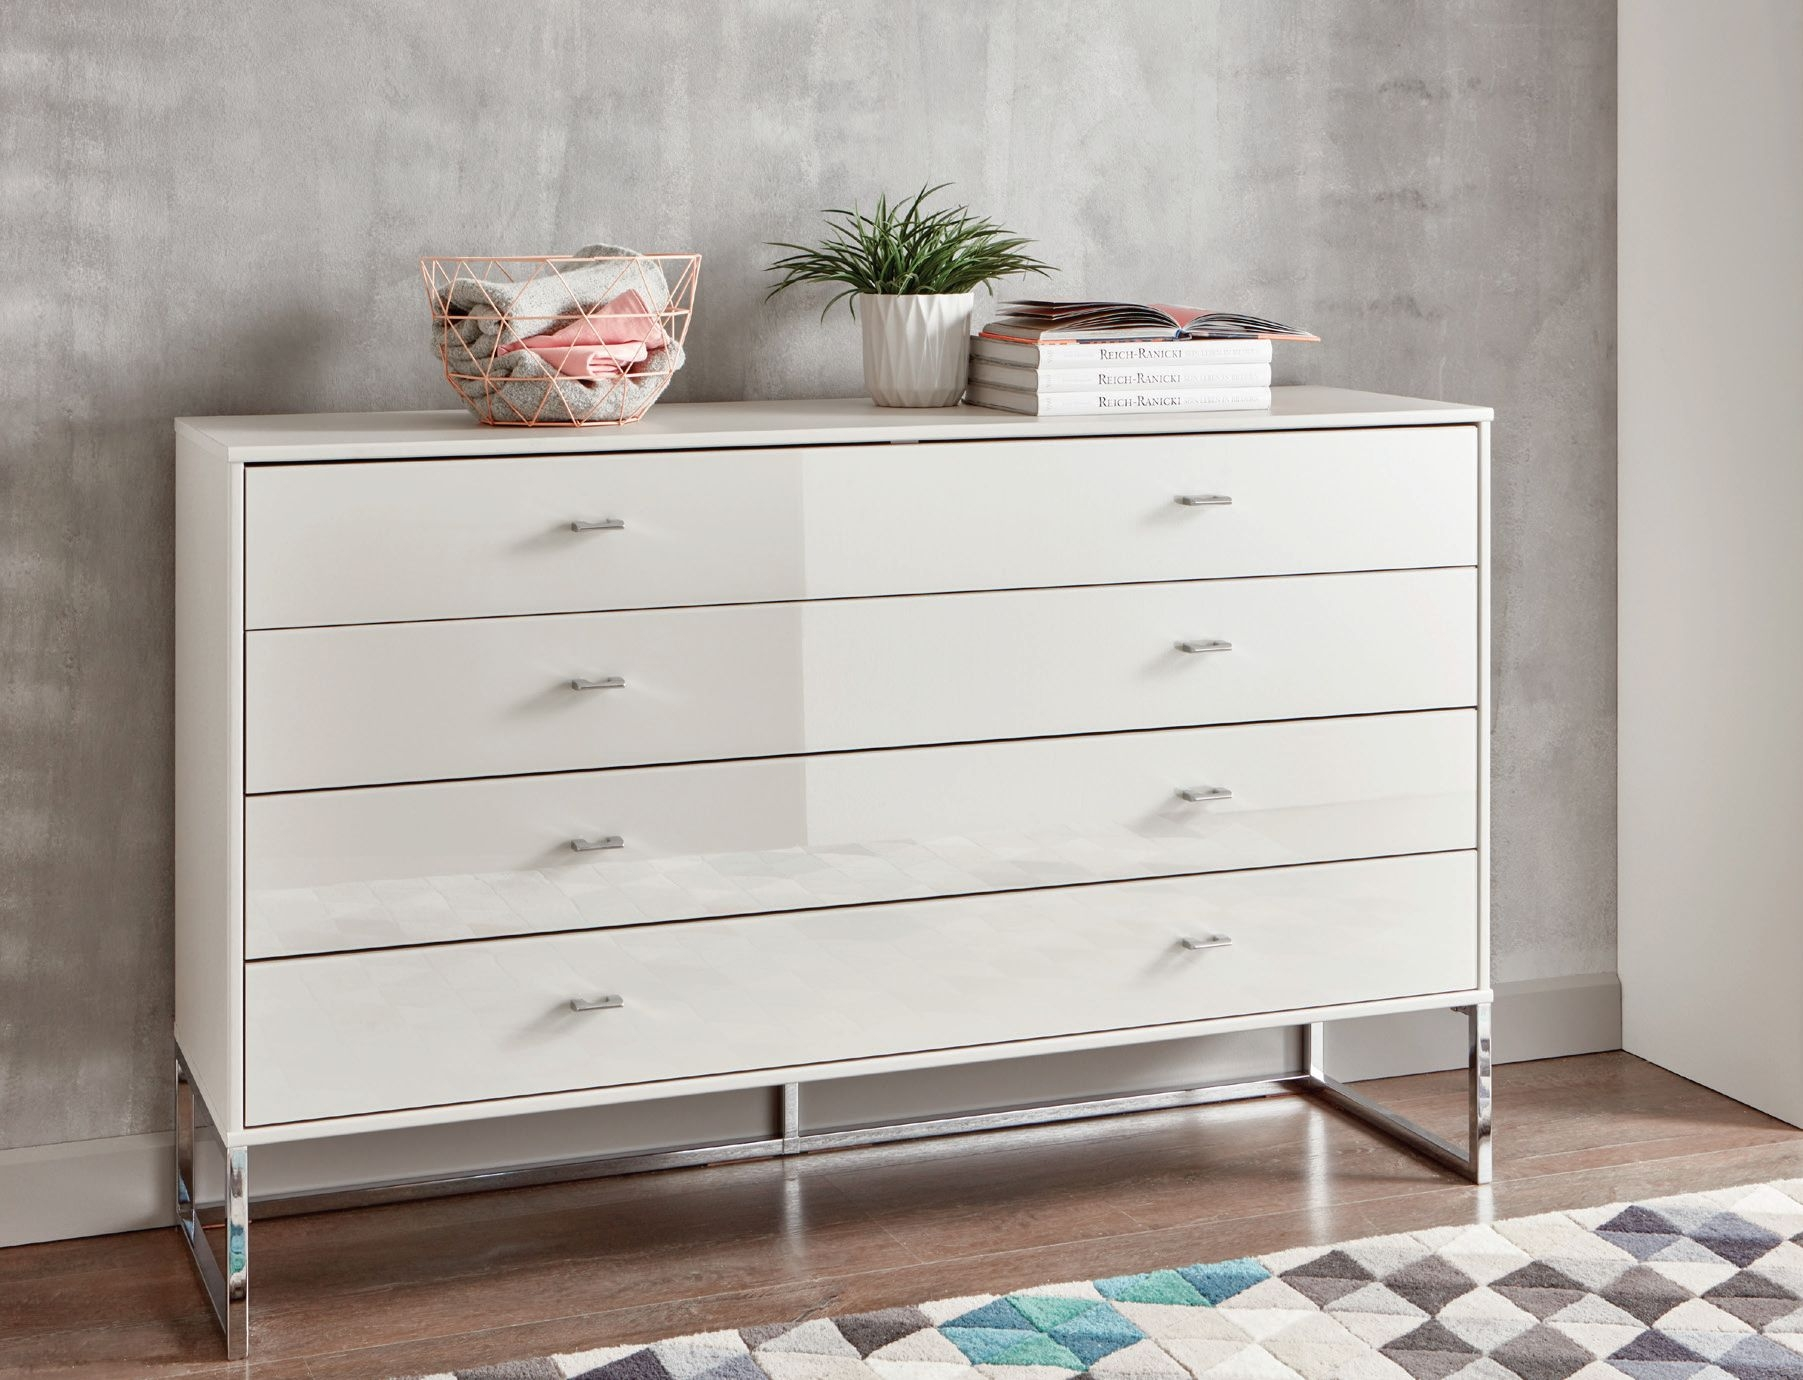 Wiemann Vigo 2 Door 4 Drawer Combi Chest in Champagne